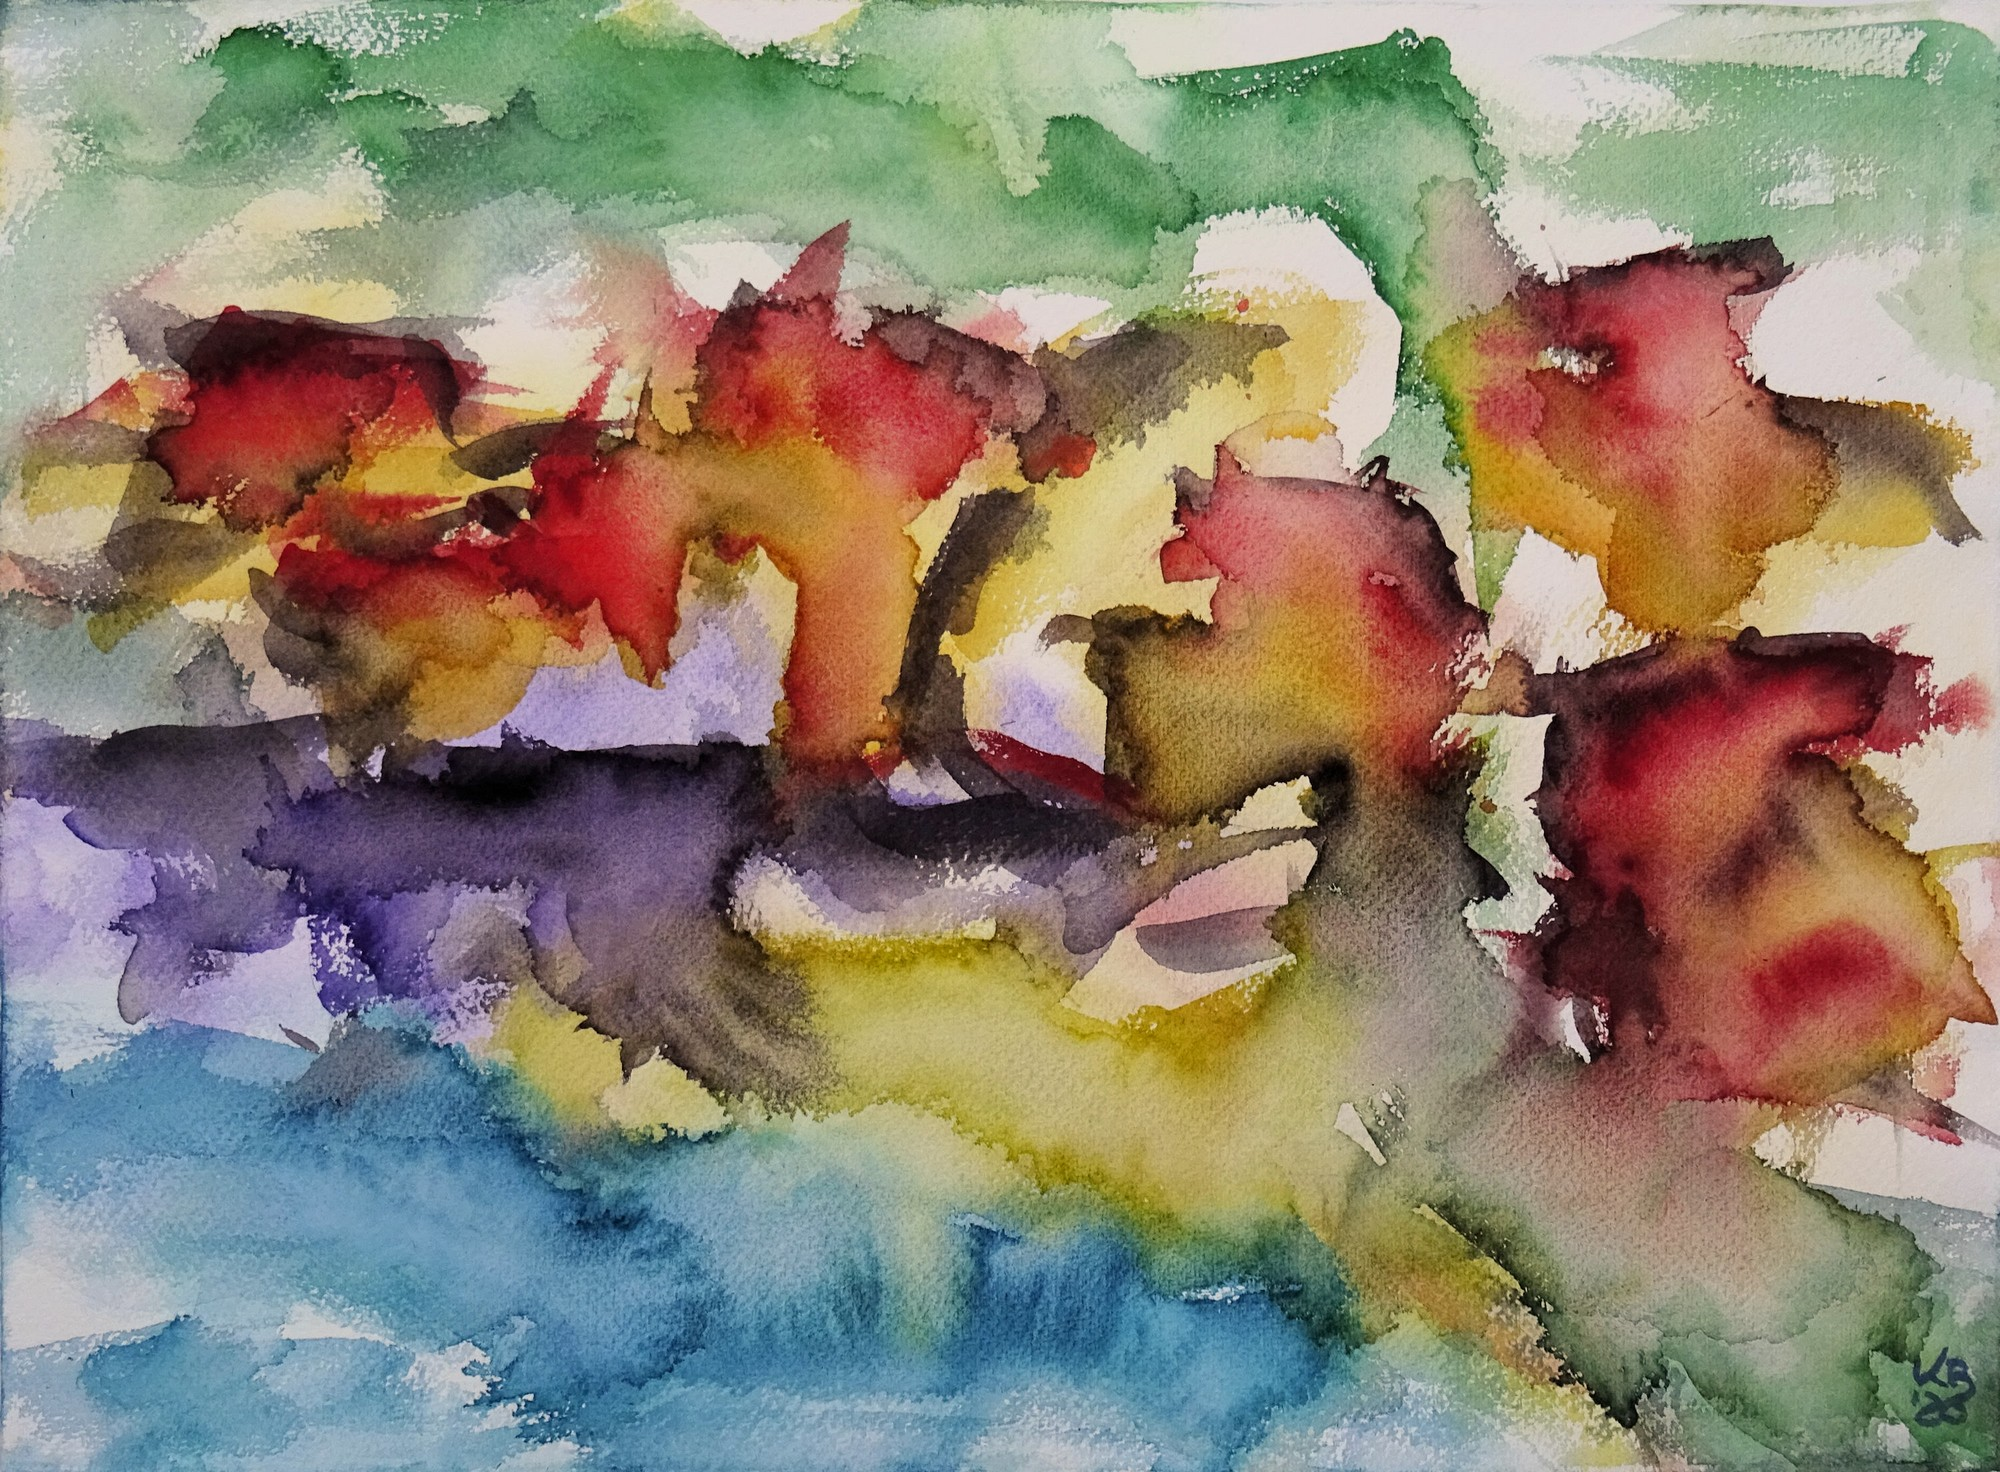 Port Isaac II, Watercolour 53 x 39 cm, © 2020 by Klaus Bölling